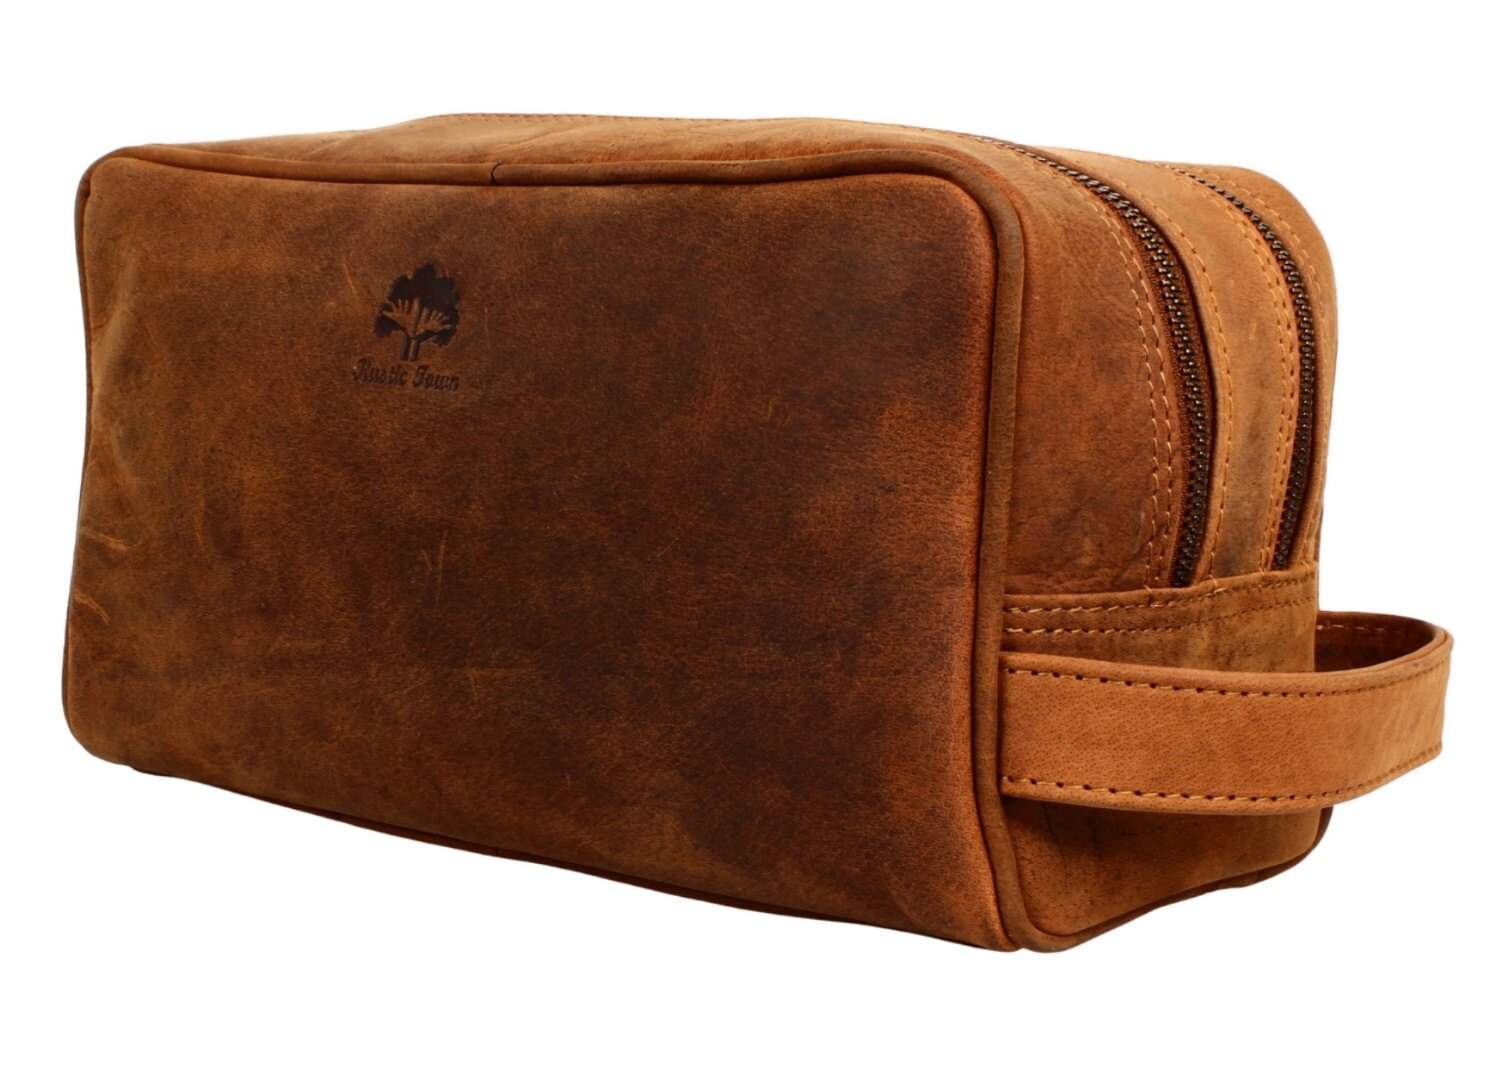 9e1cbf2093fc Genuine Leather Travel Toiletry Bag - Dopp Kit Organizer By Rustic Town  (Brown) 0